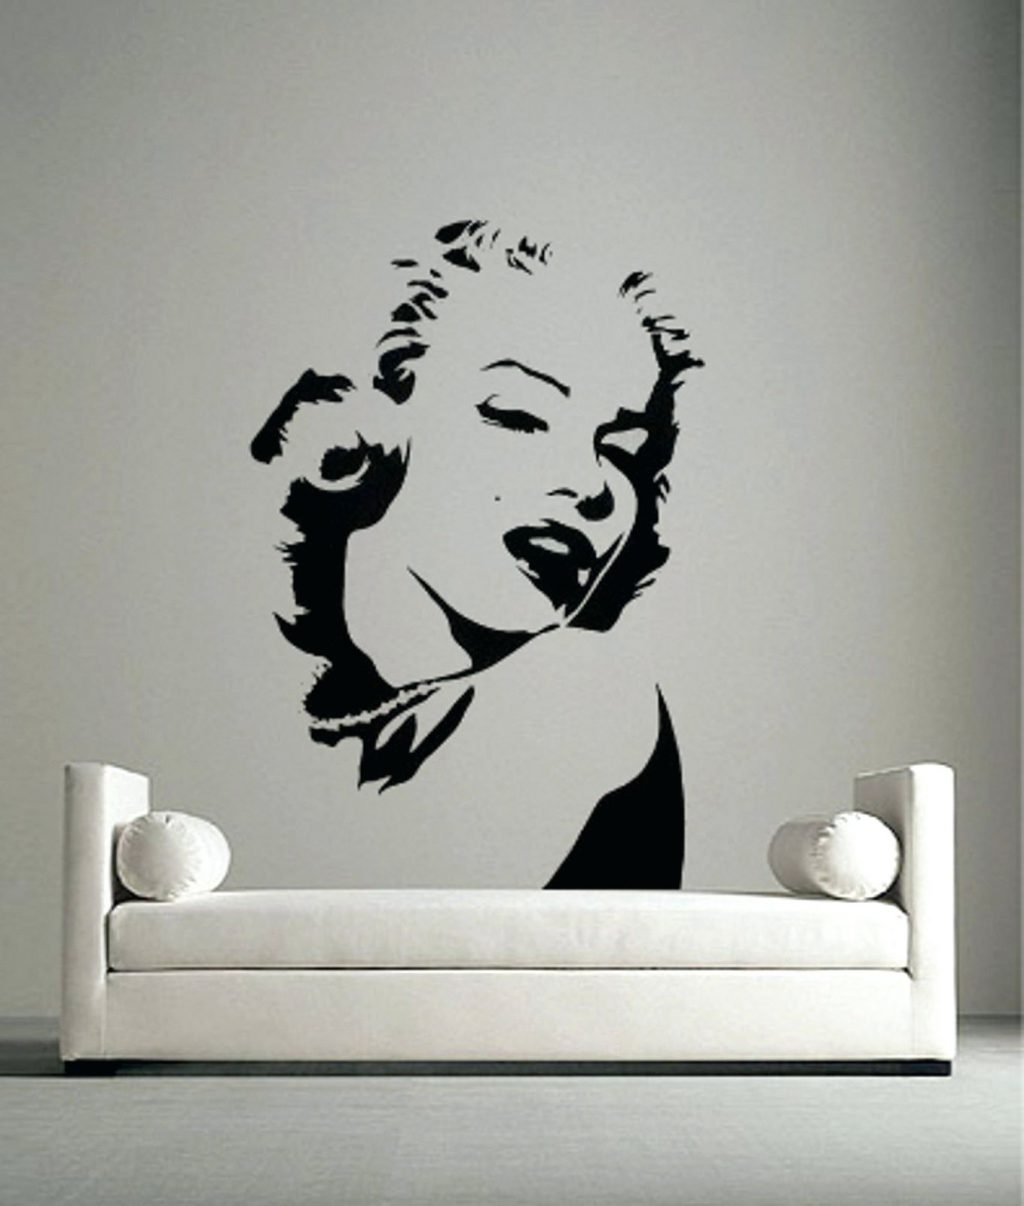 Well Known Stencil Wall Art For Wall Arts ~ Stencil Wall Art Australia Stencil Wall Art Tree (View 15 of 15)